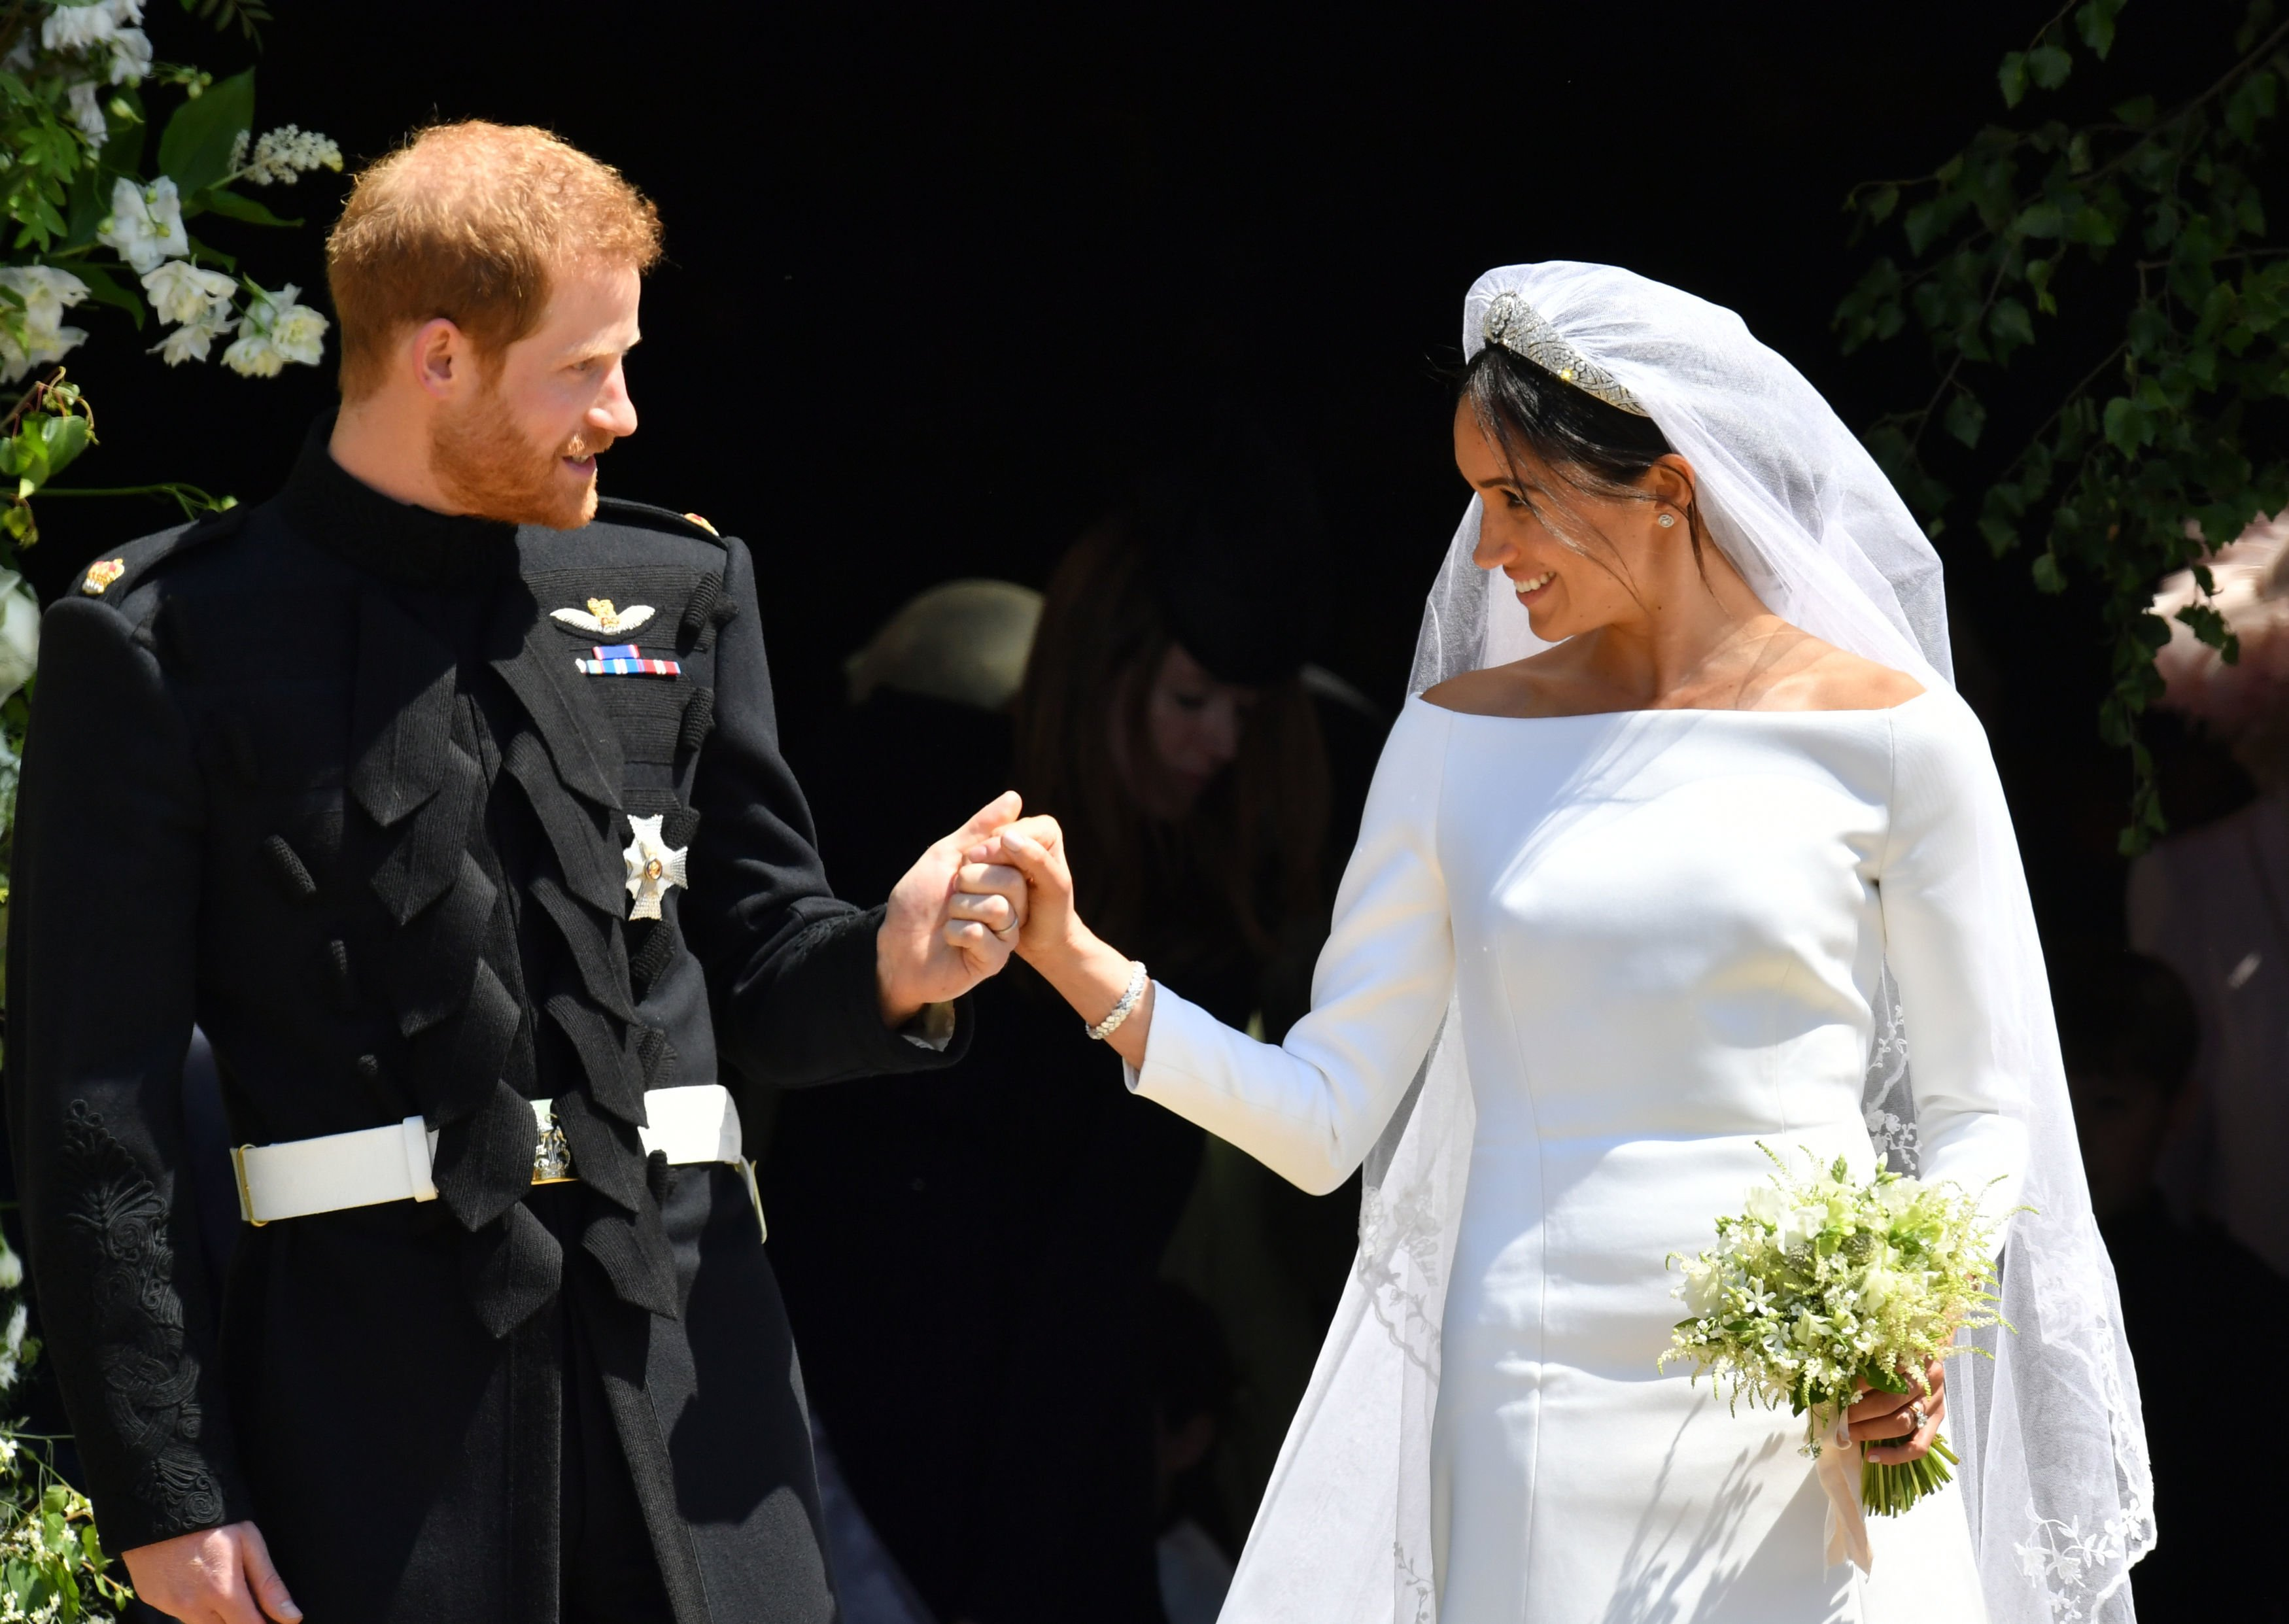 Image Credits: Getty Images / Ben Birchall - WPA Pool   Prince Harry and Meghan Markle leave St George's Chapel through the west door after their wedding in St George's Chapel at Windsor Castle on May 19, 2018 in Windsor, England.